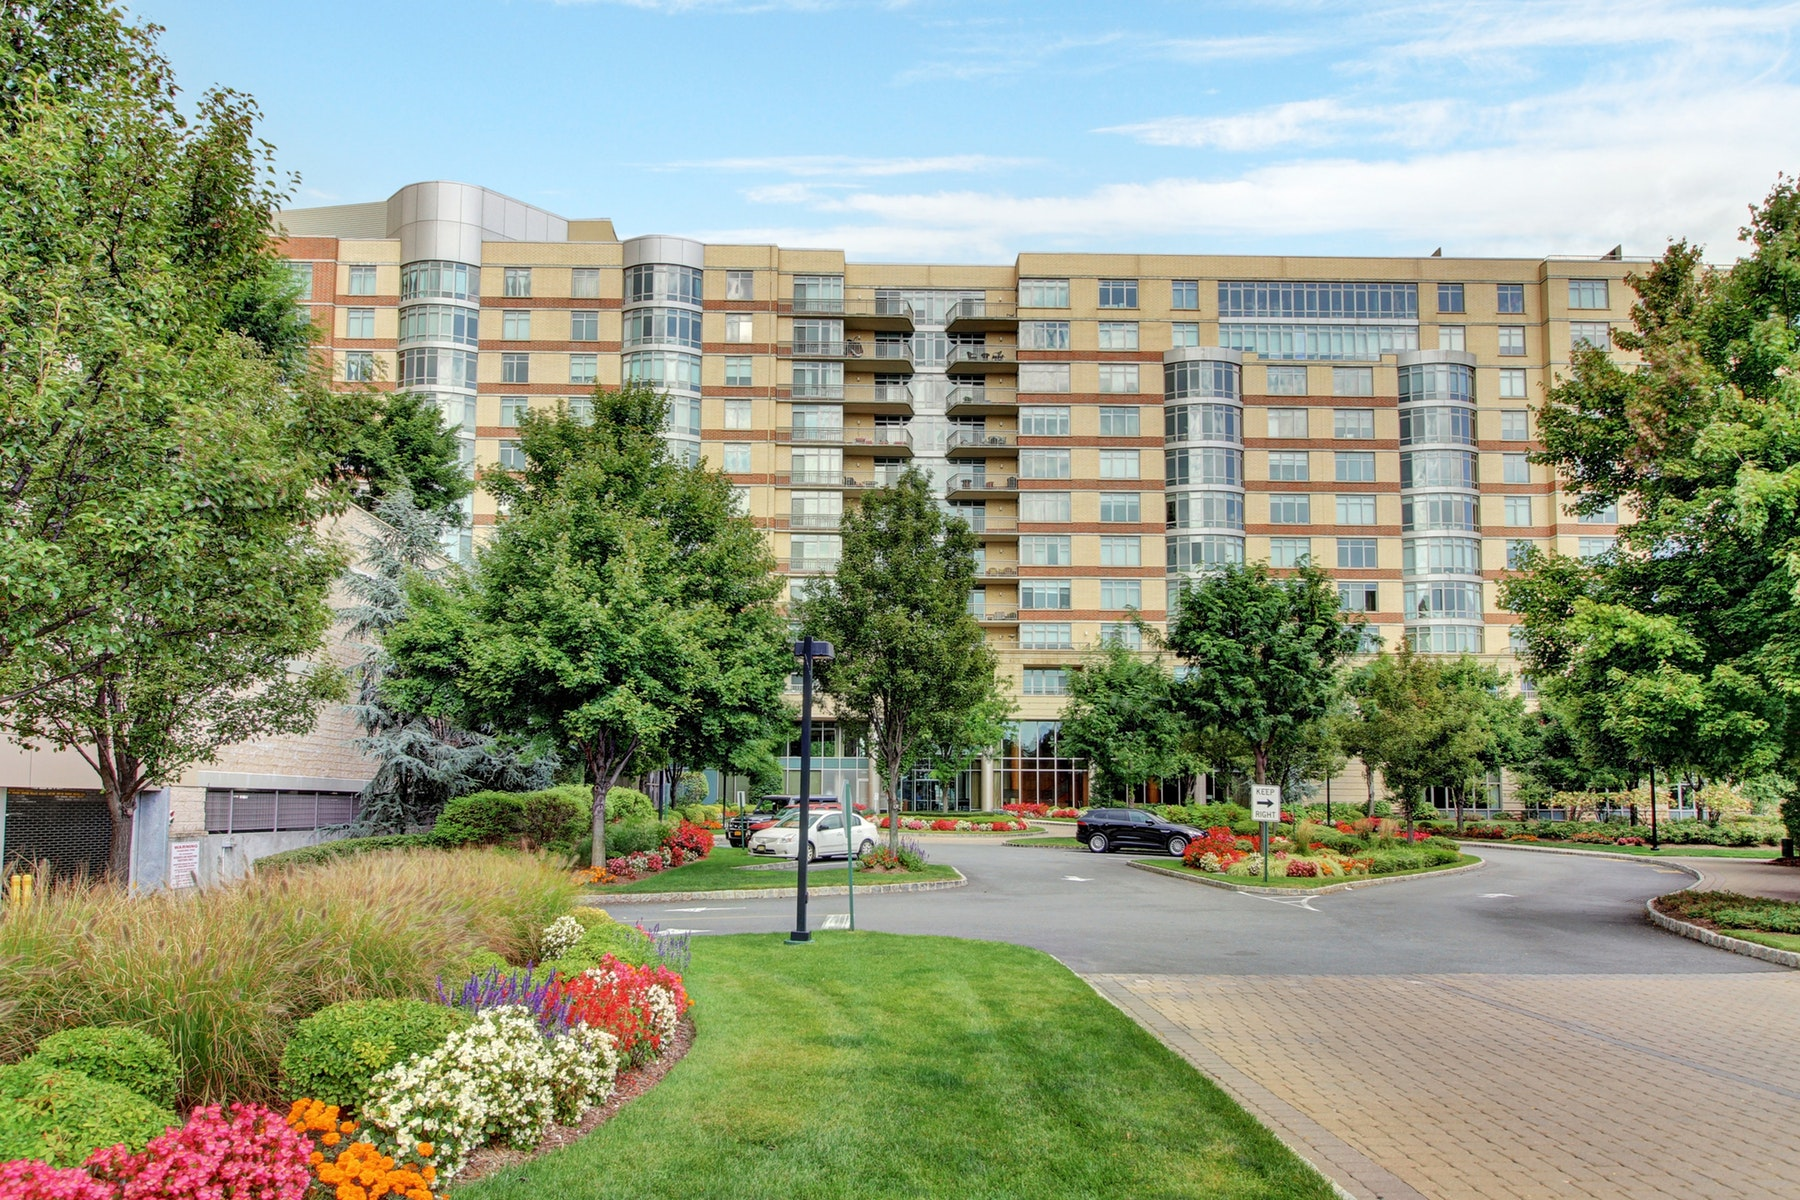 Condominiums for Sale at The Watermark 8100 River Road #1005 North Bergen, New Jersey 07047 United States